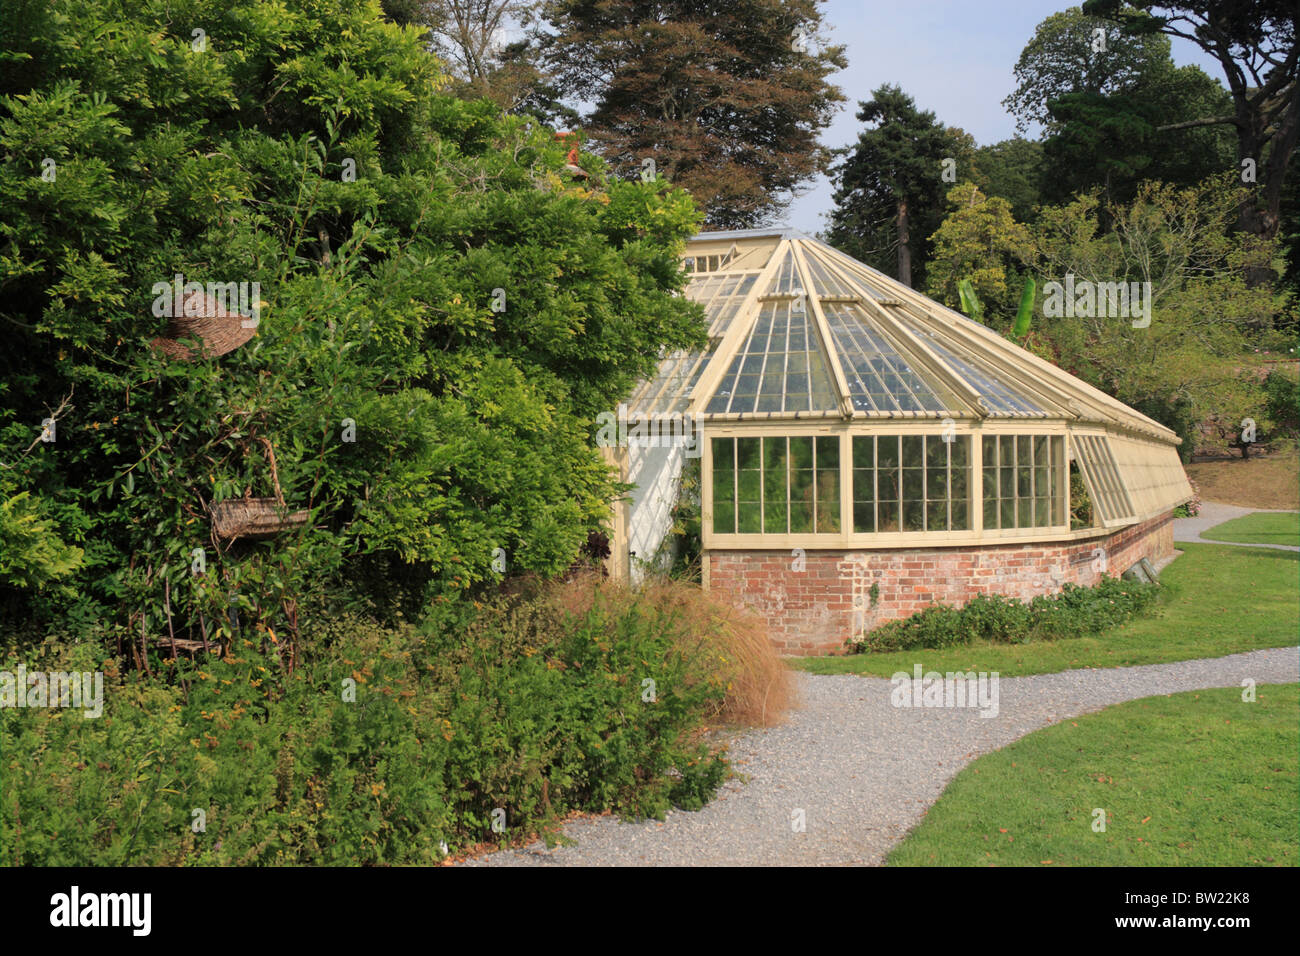 Wood And Brick Greenhouse In Gardens At Greenway House Former Home Of  Agatha Christie Dartmouth Devon UK